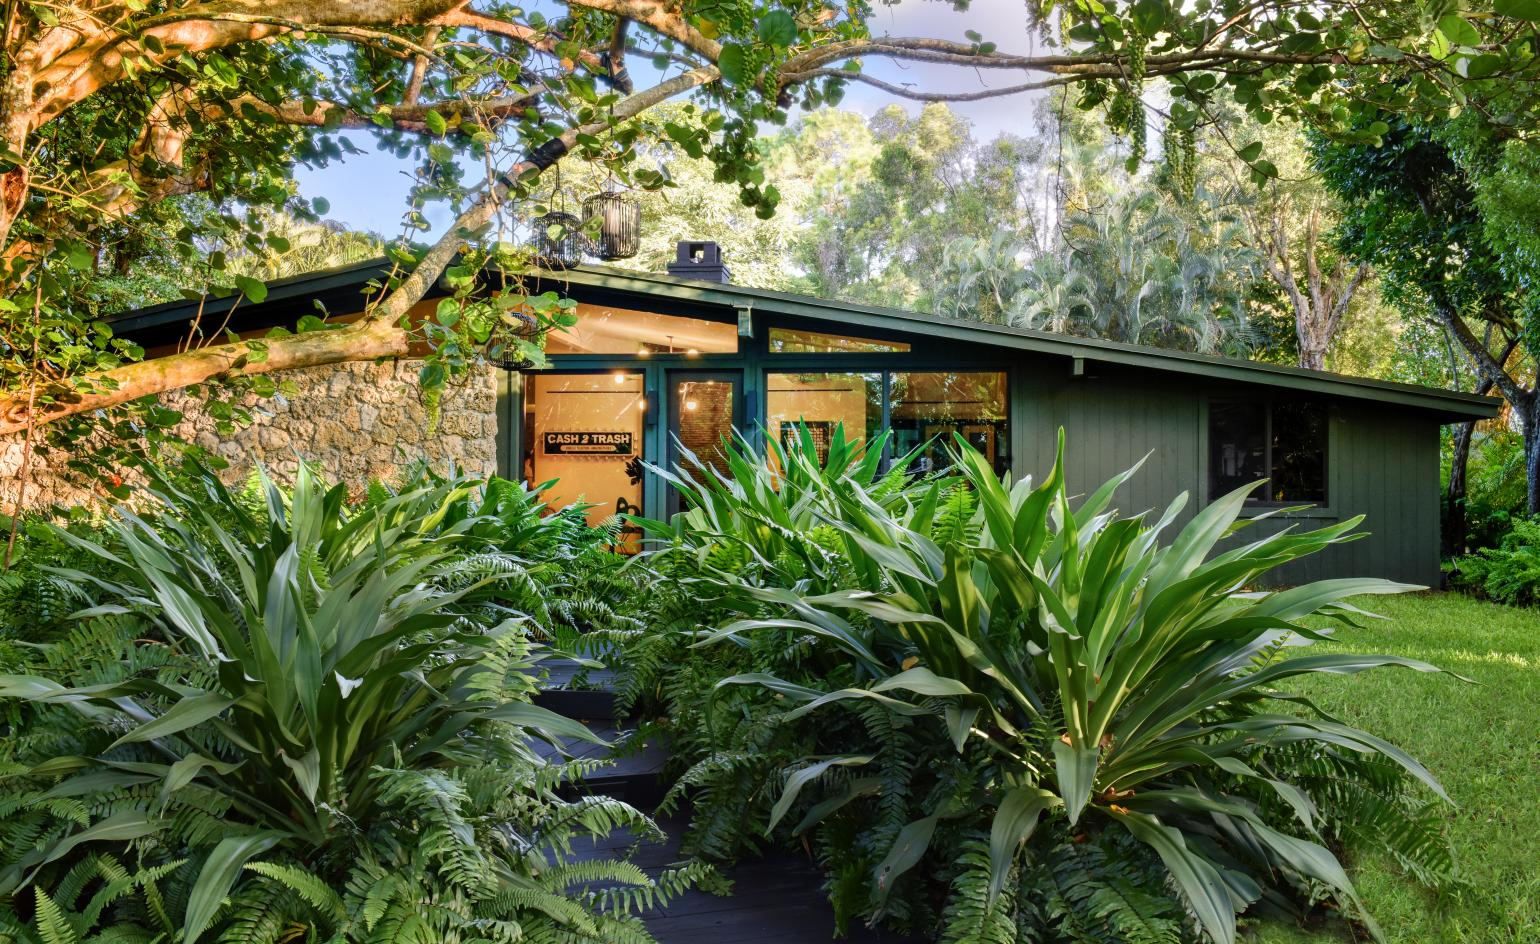 Tropical modernism gets a new look in this Floridian paradise home